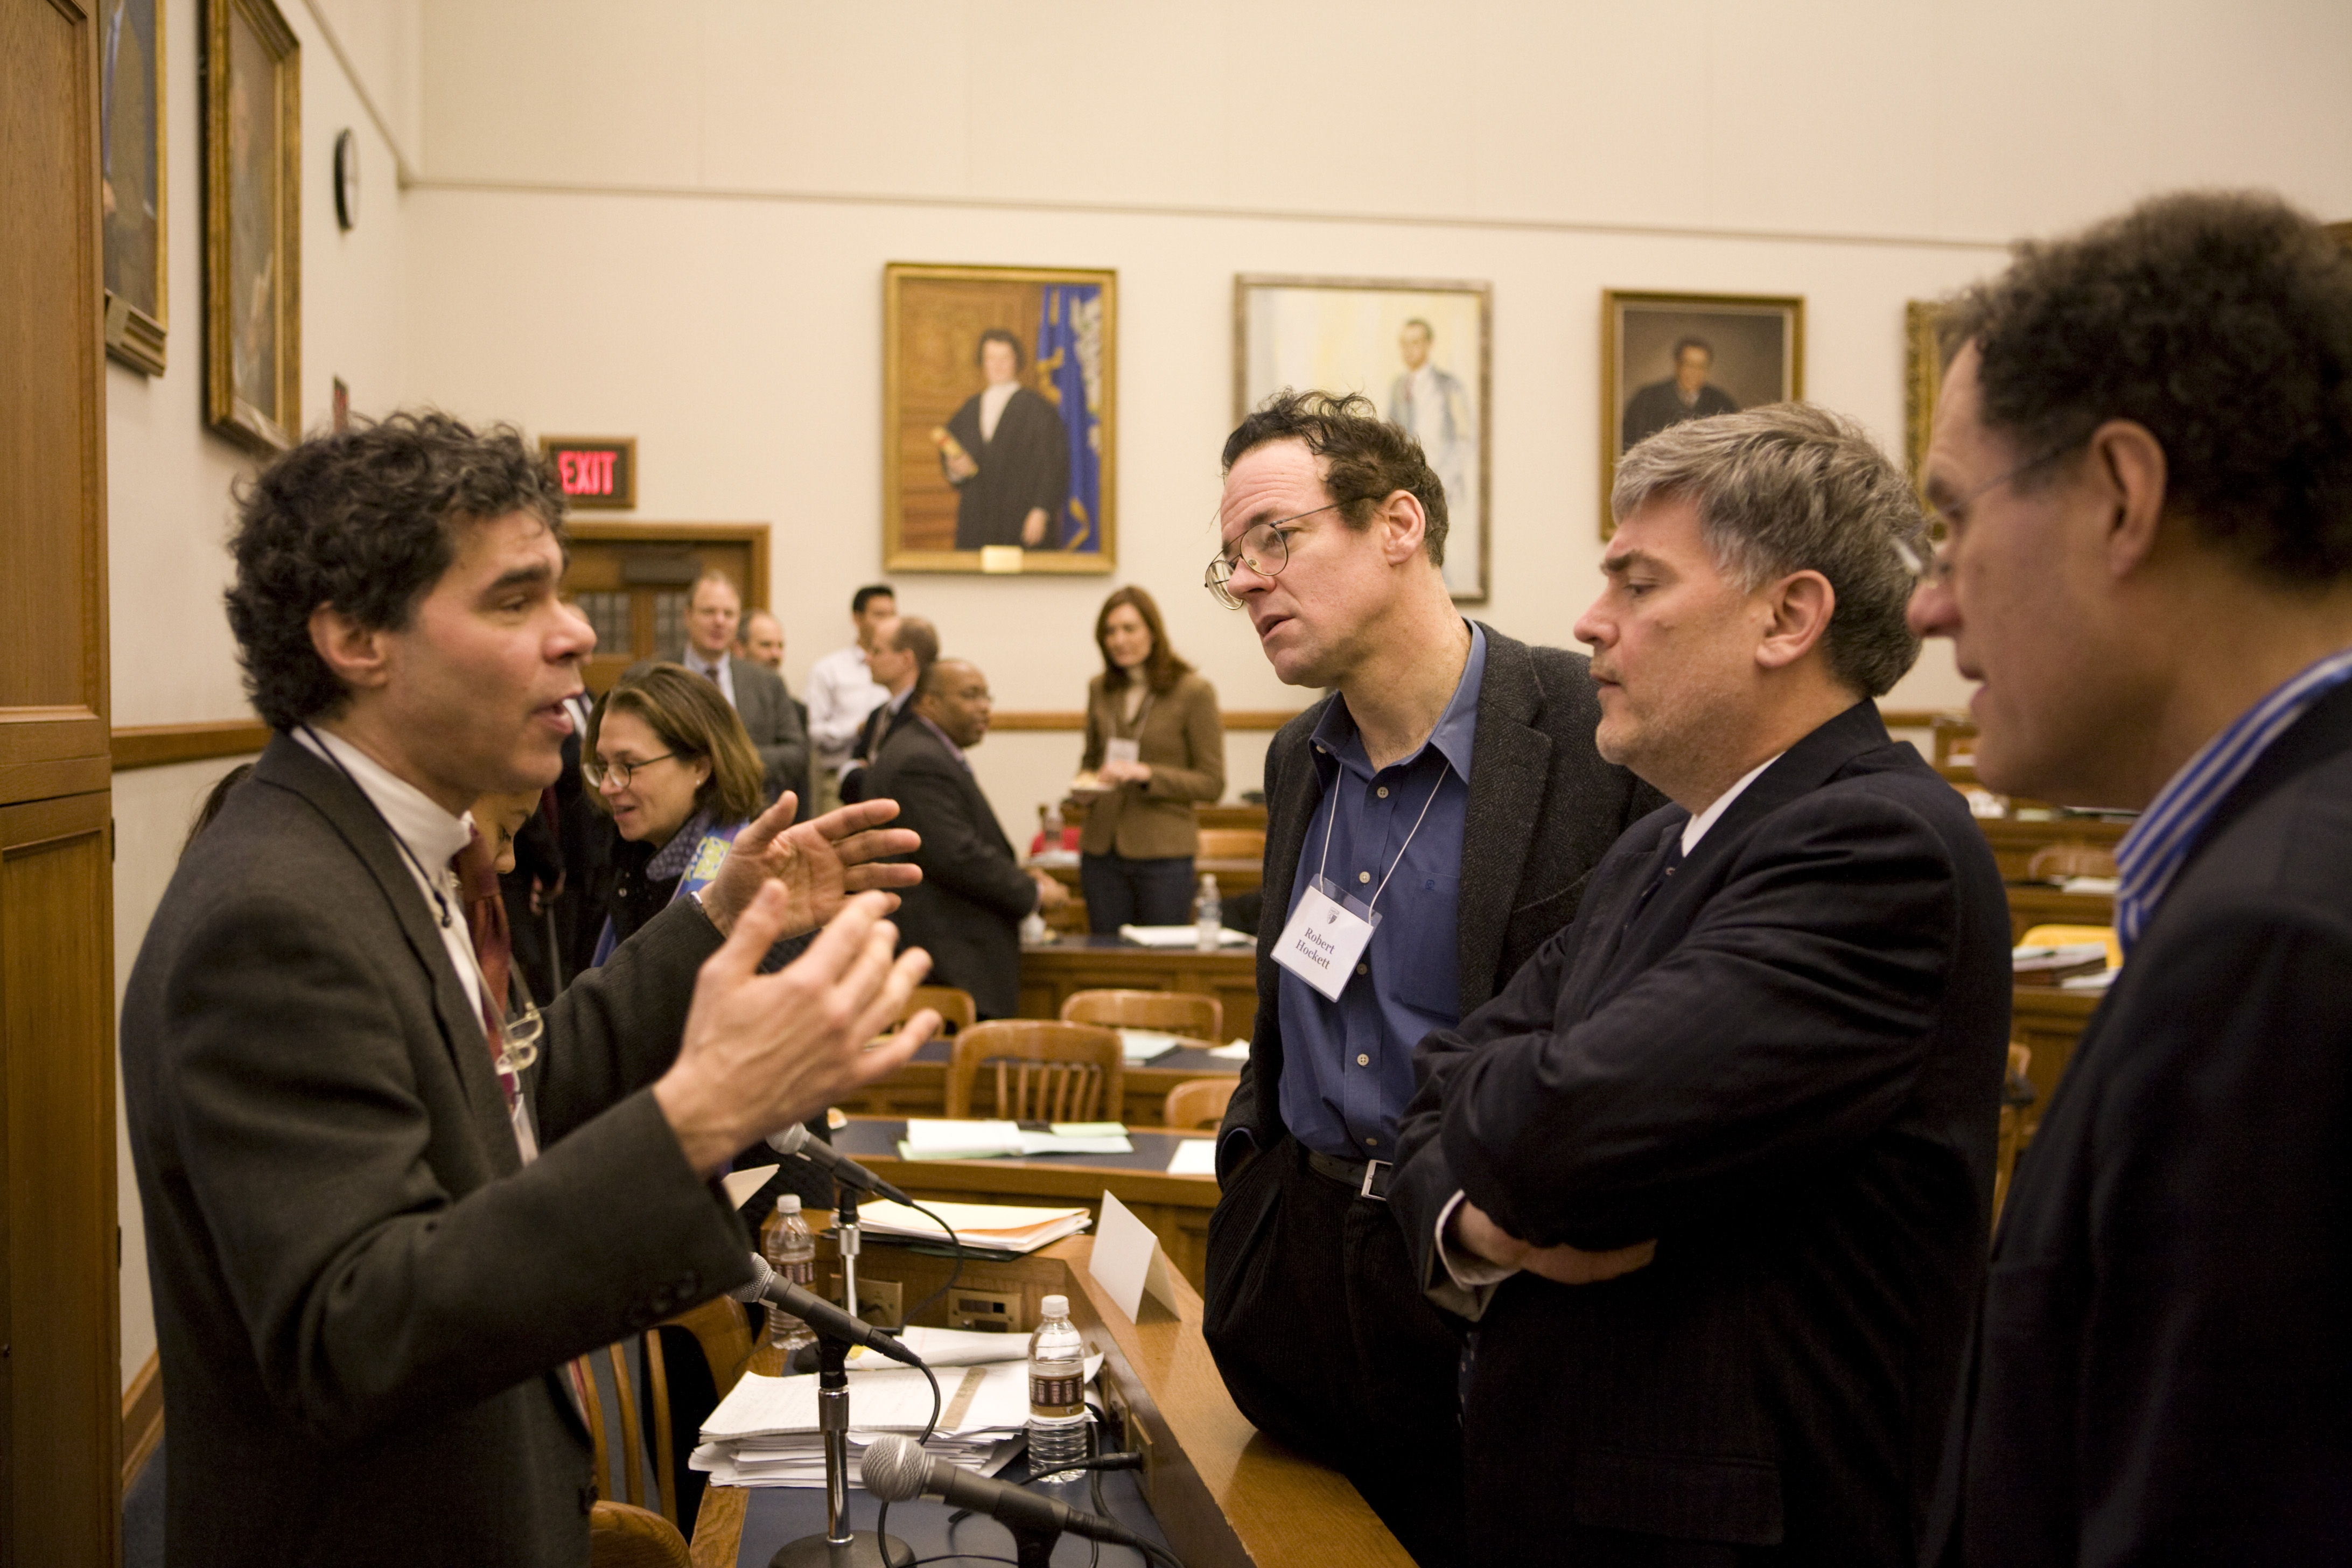 Participants at the 2009 Weil Roundtable discuss during break